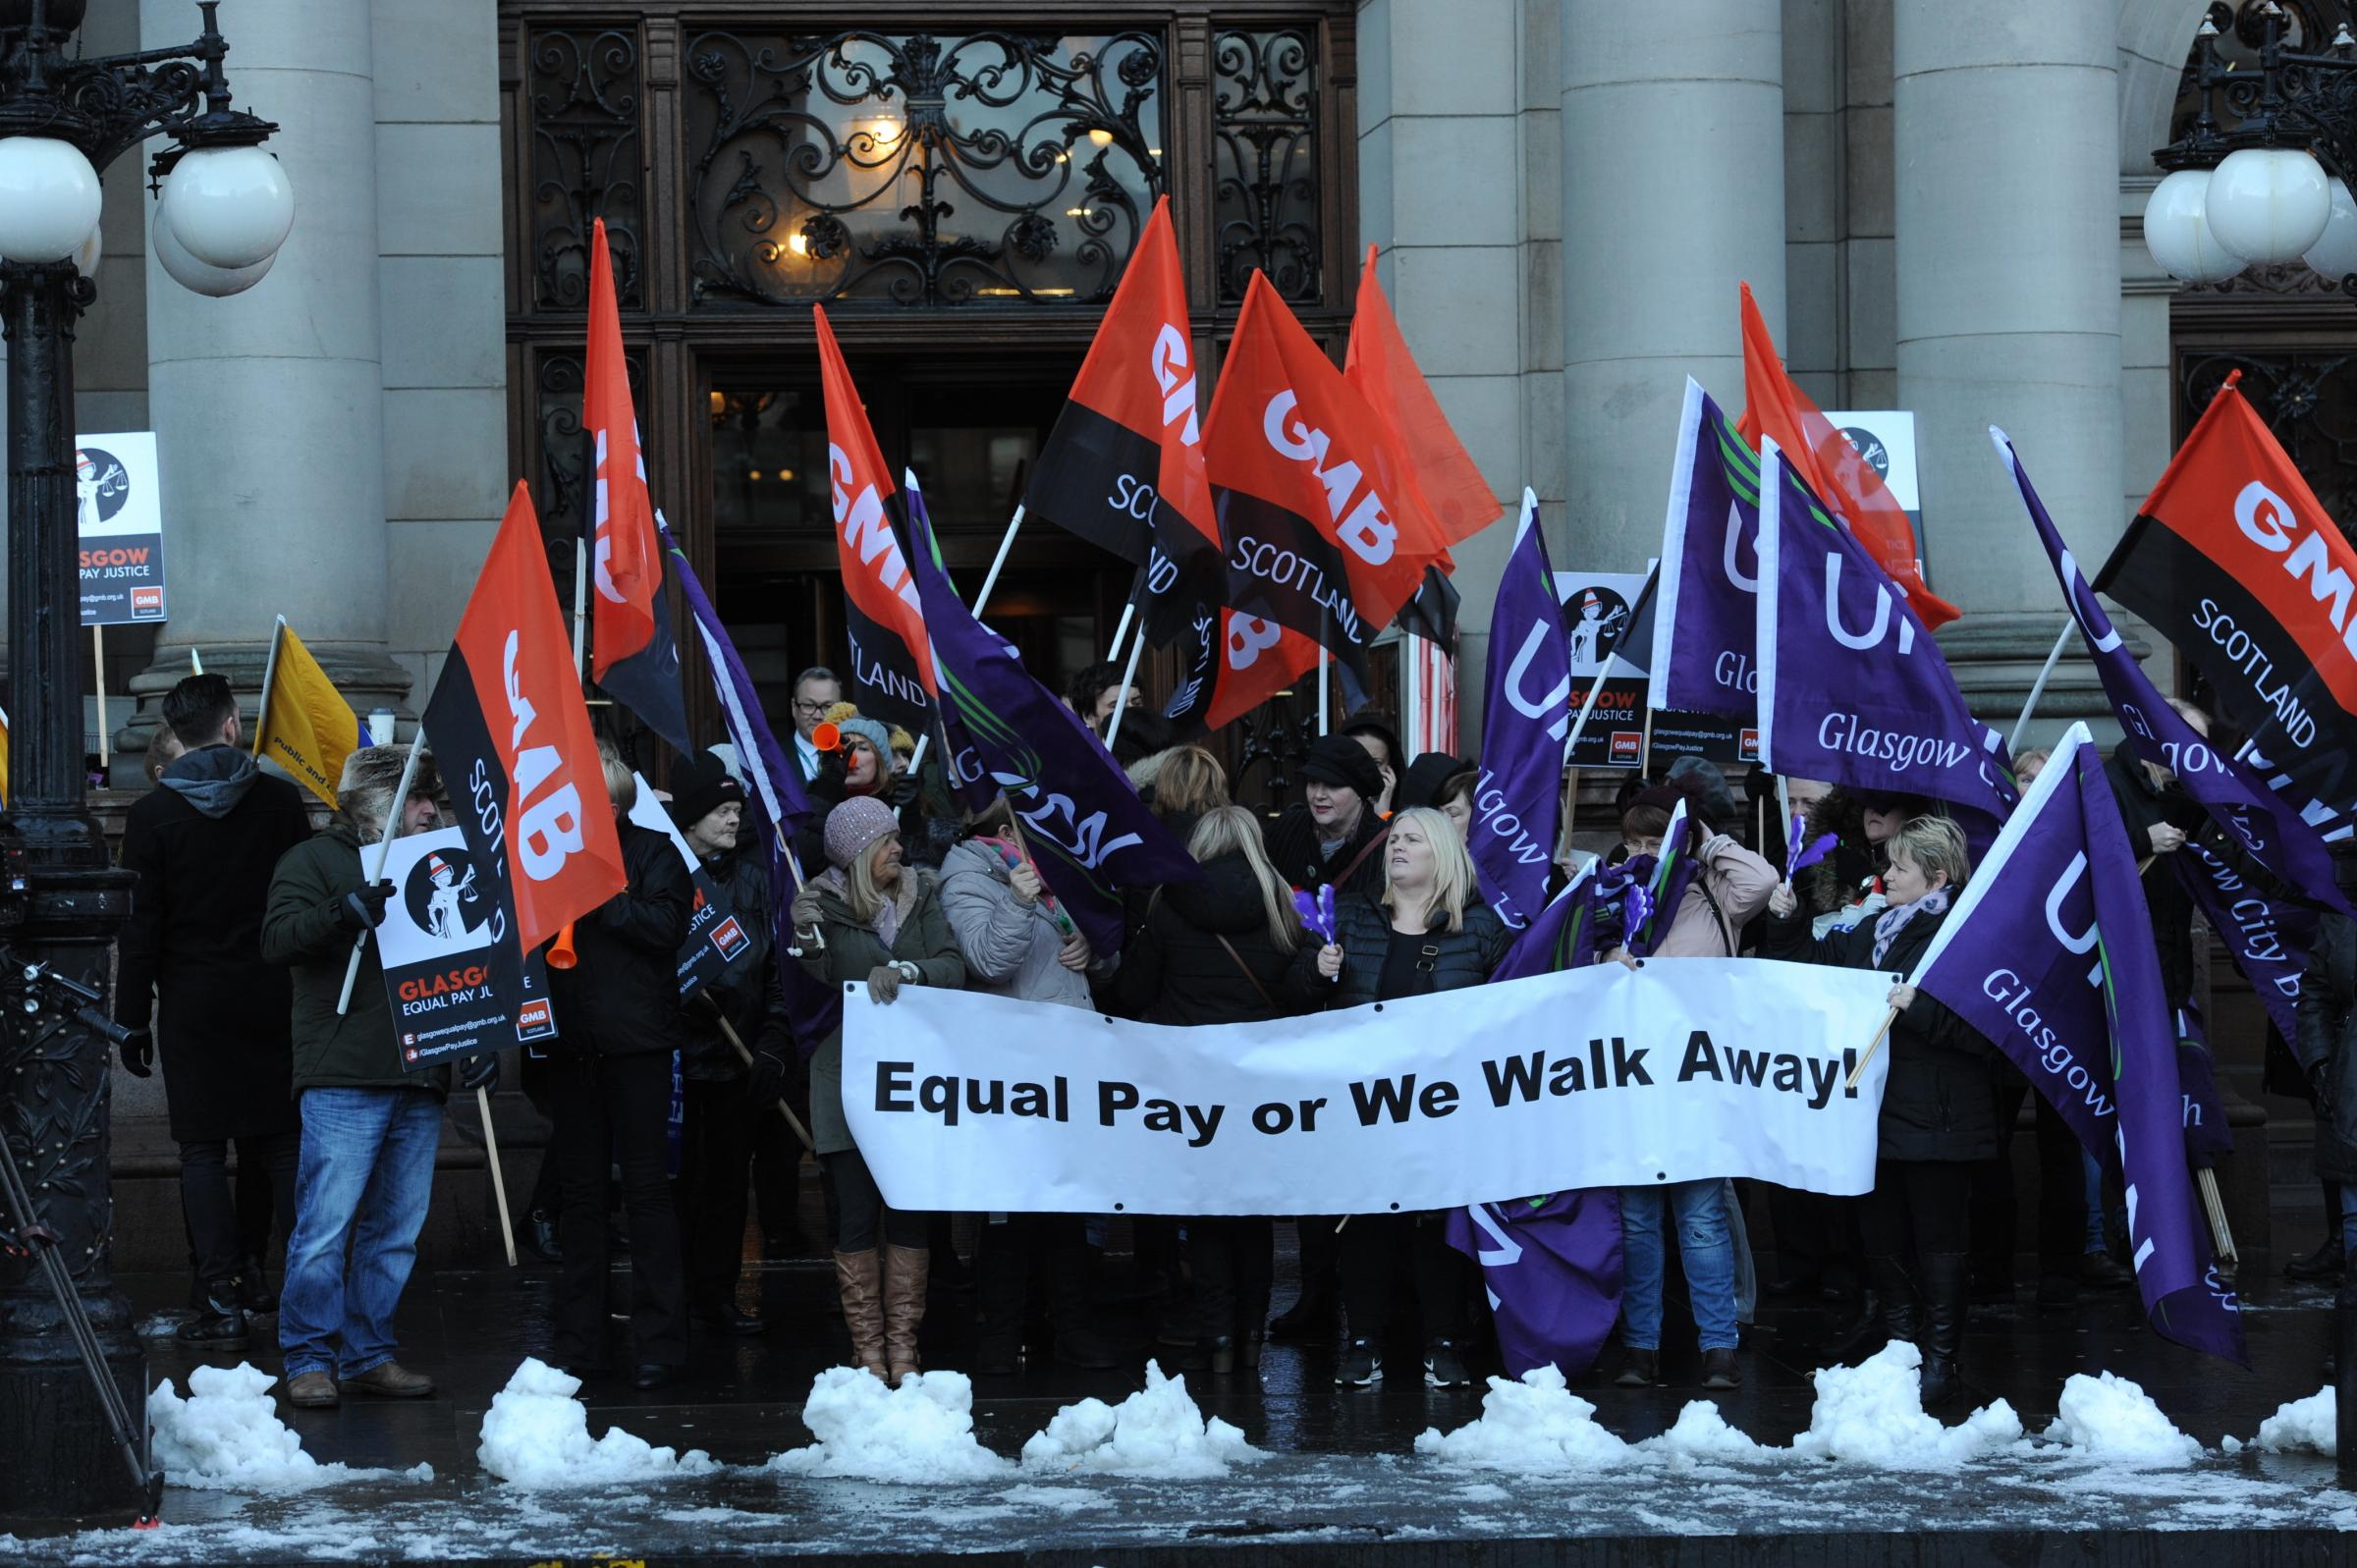 Equal Pay Demonstration in front of Glasgow City Chambers  Picture: Kirsty Anderson